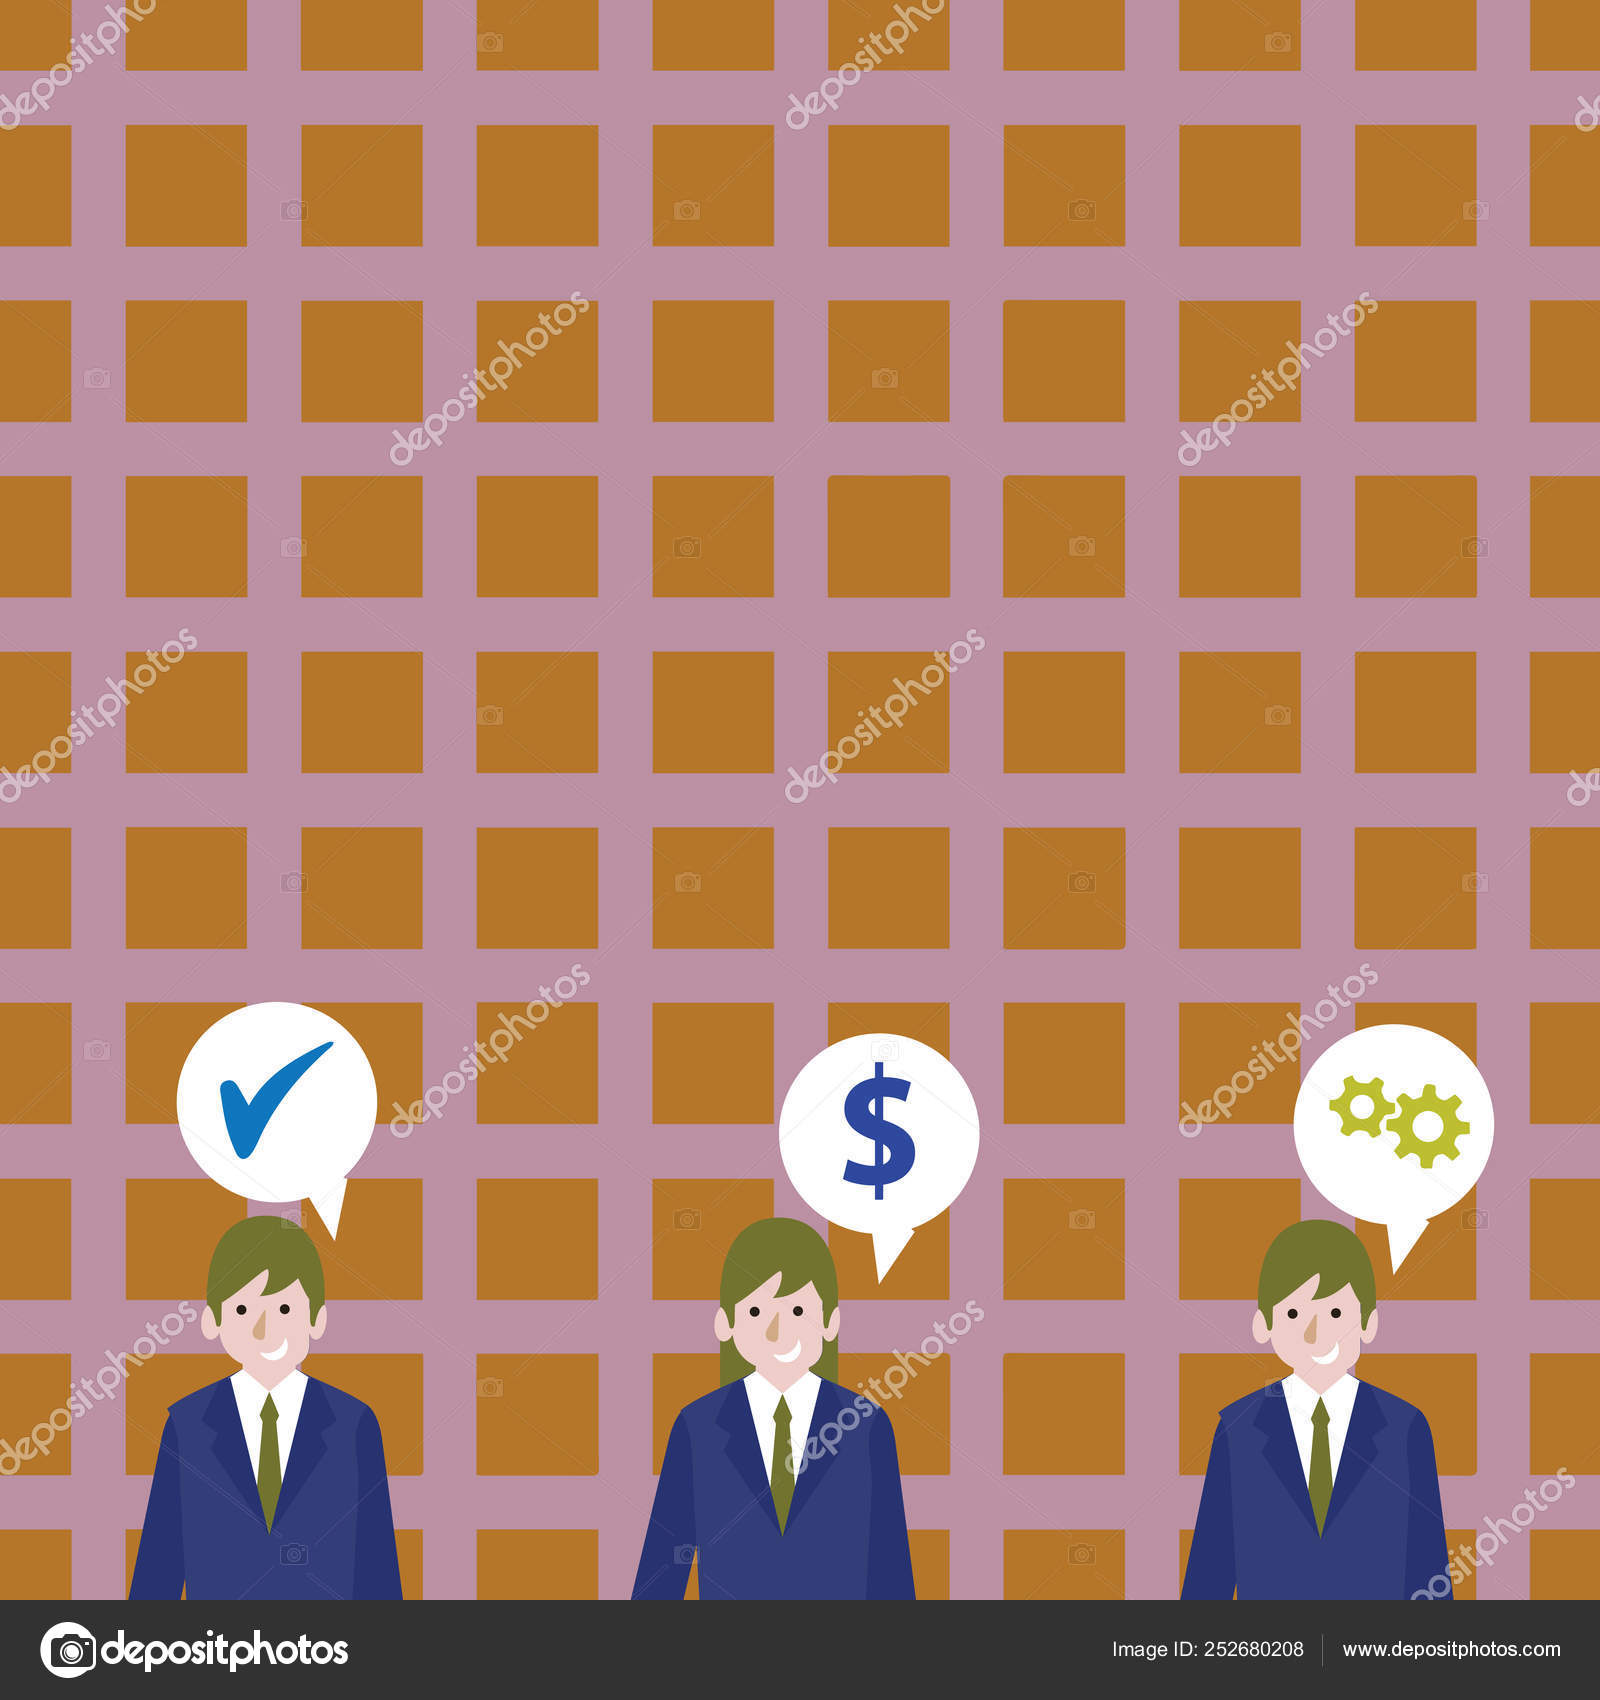 Illustration of Three Business People with Each has Speech Bubble